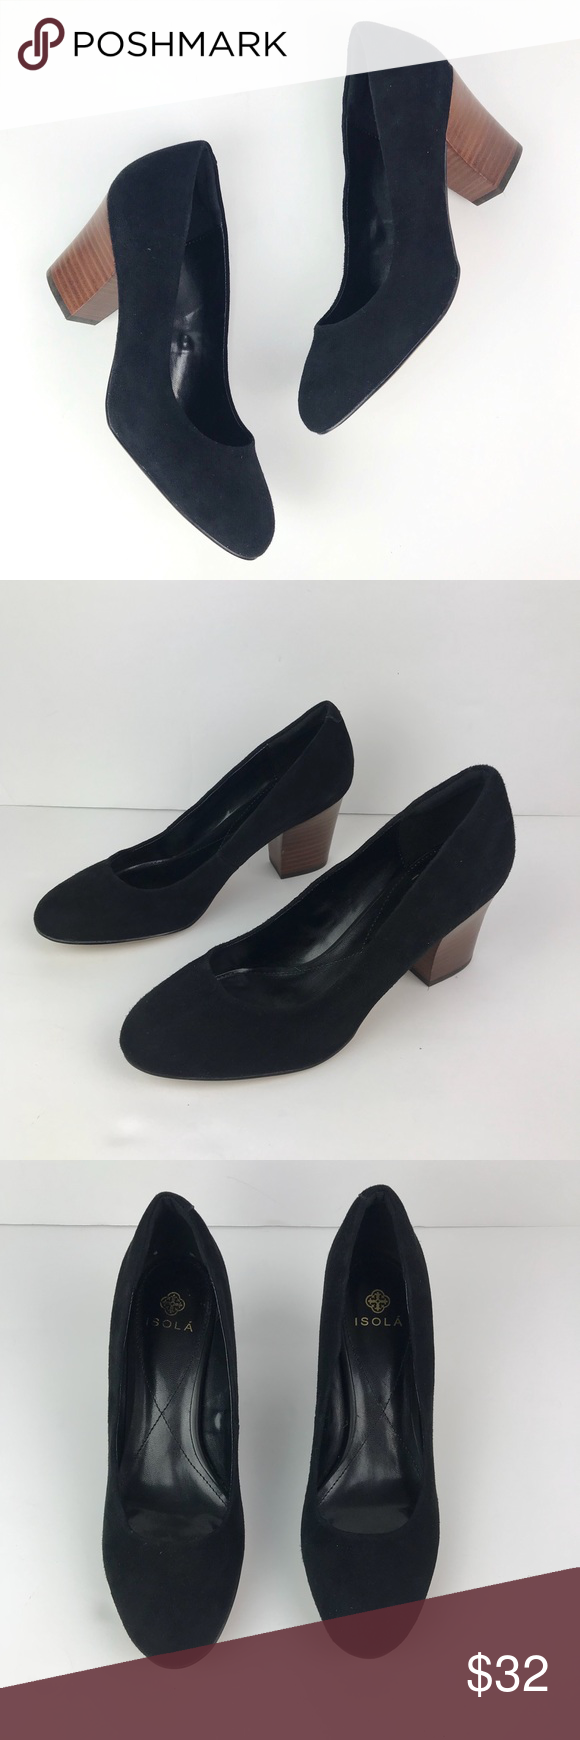 d383afb74d46 Isola Black Suede Wood Heel Pumps Size 9.5 Great pre-owned condition! Emma  Lee Black Suede Pumps With Wood Heel Isola Shoes Heels